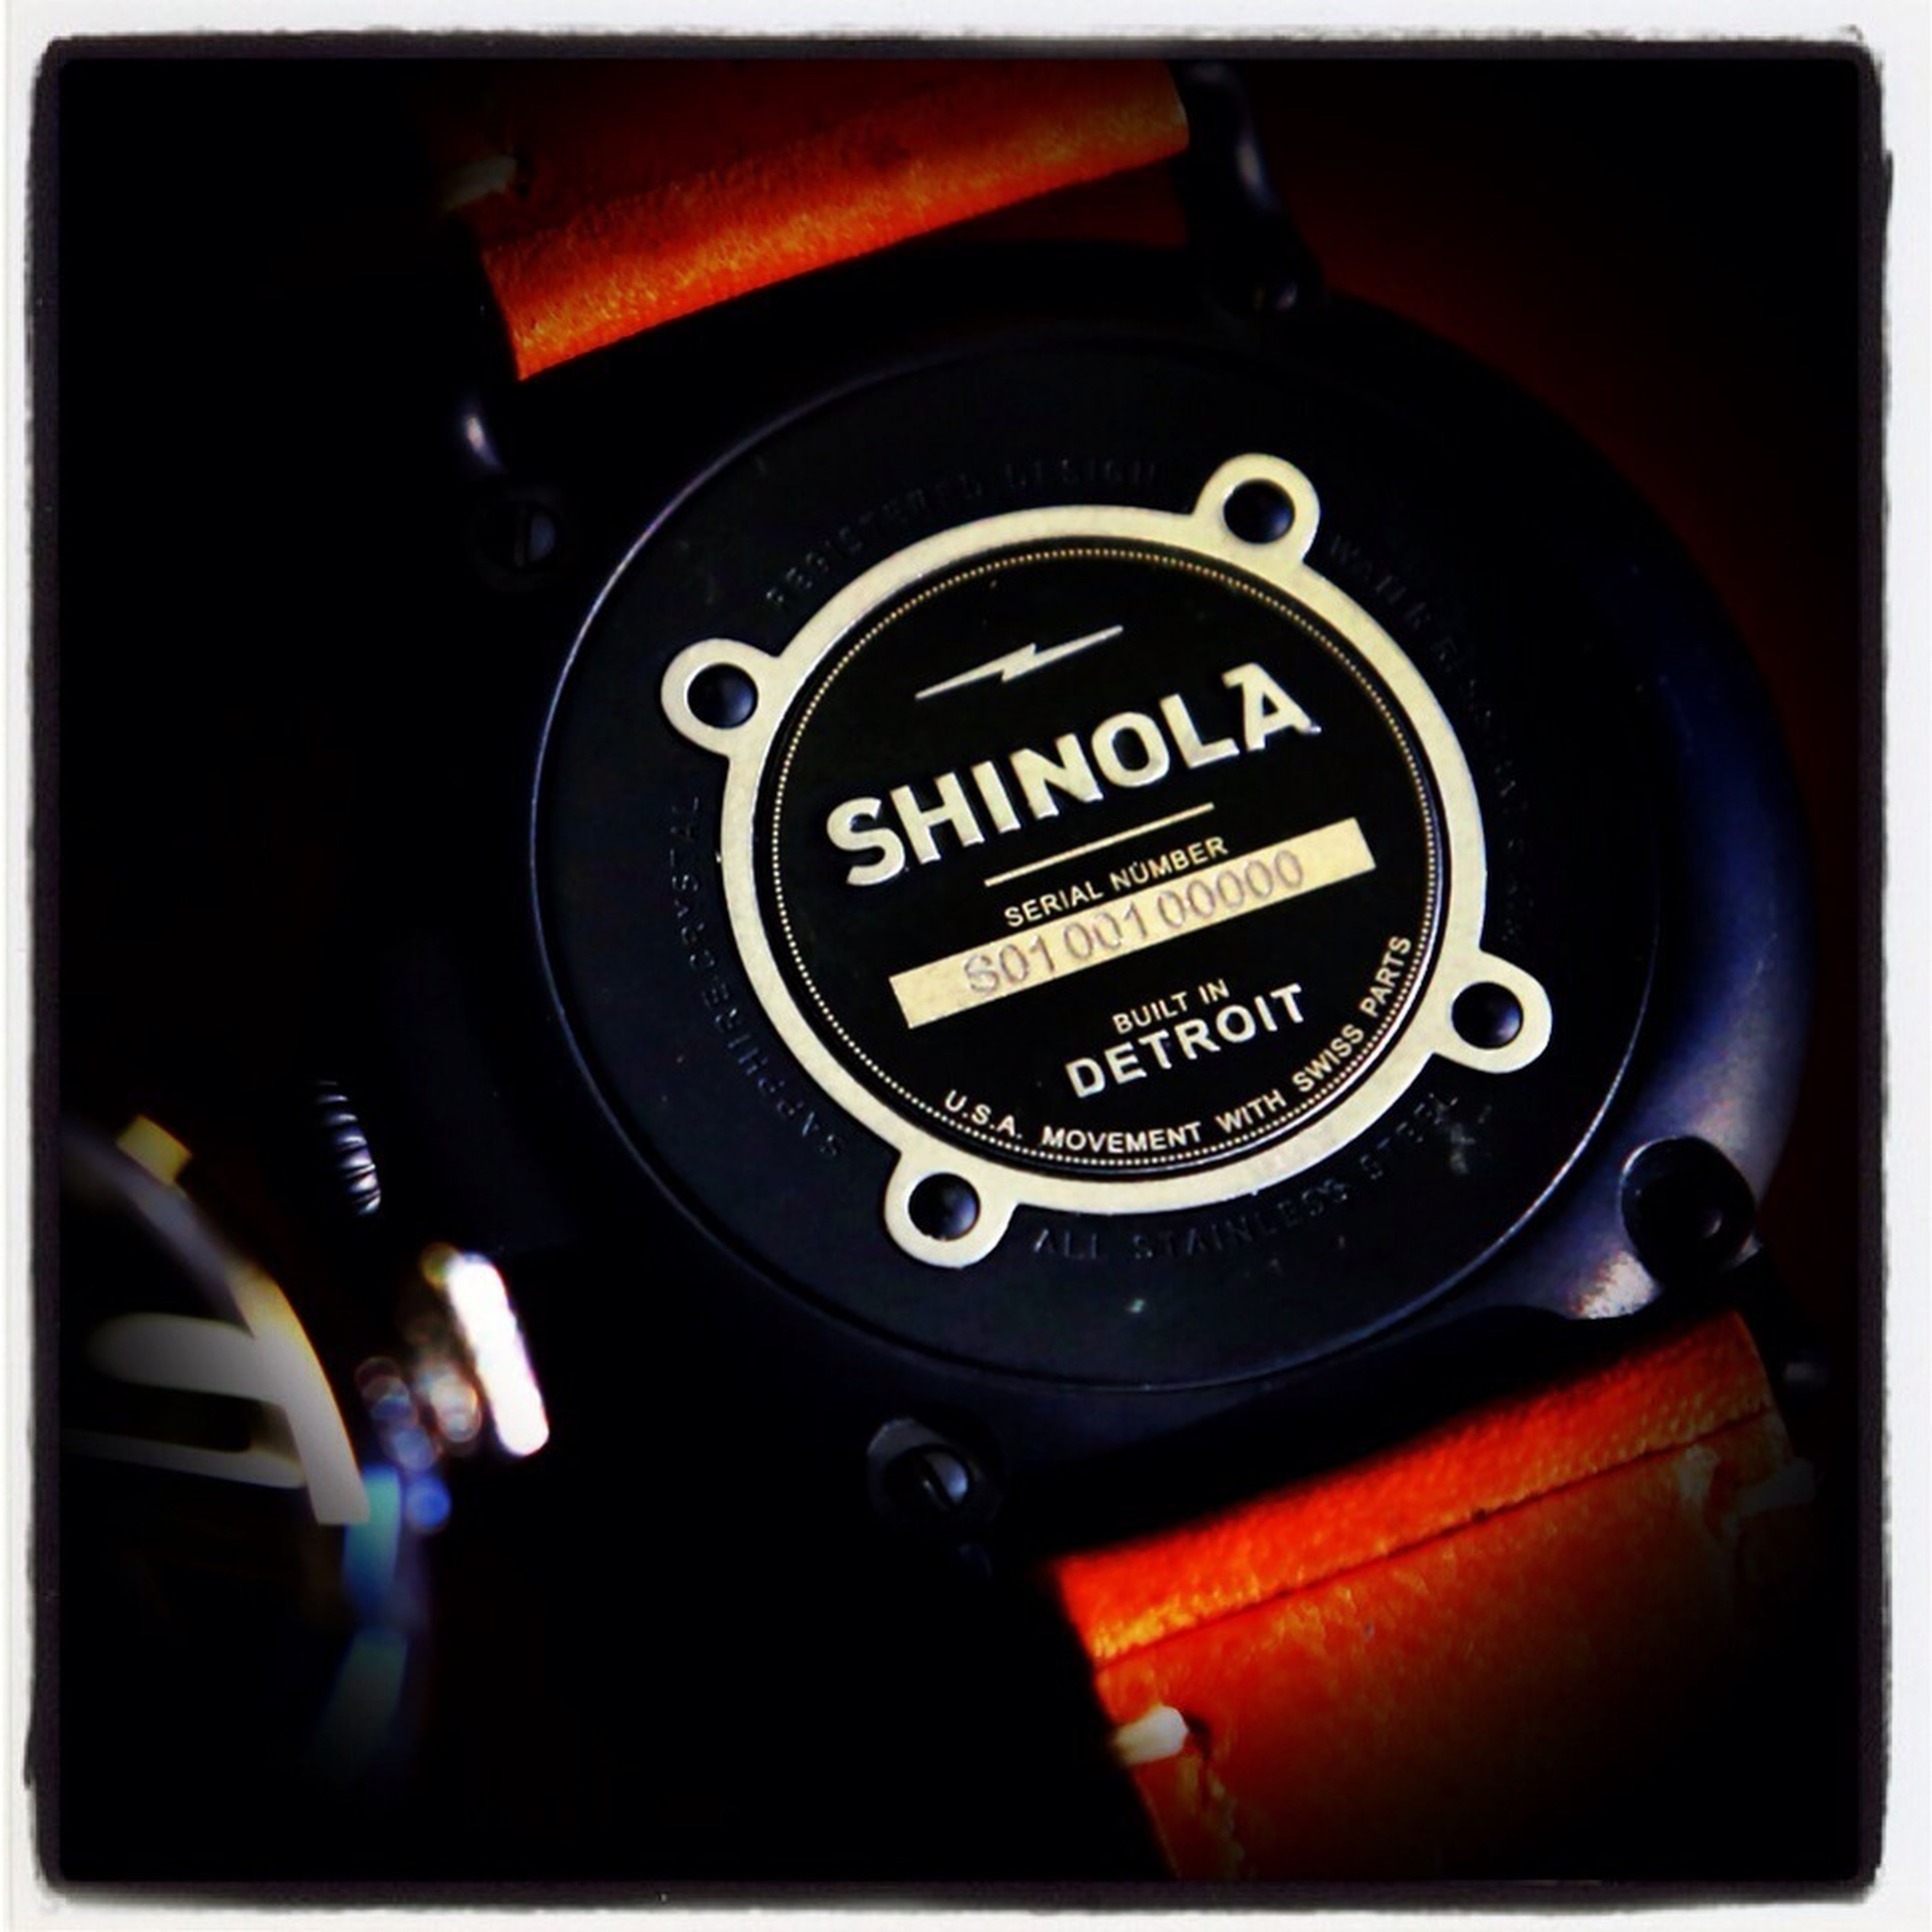 "Shinola watches are nice time pieces ""Built in Detroit"" with Detroit labor. The company is now the official watch & timekeeper of the IndyCar series race at the Detroit Grand Prix. Check out the Detroit Free Press story tomorrow."